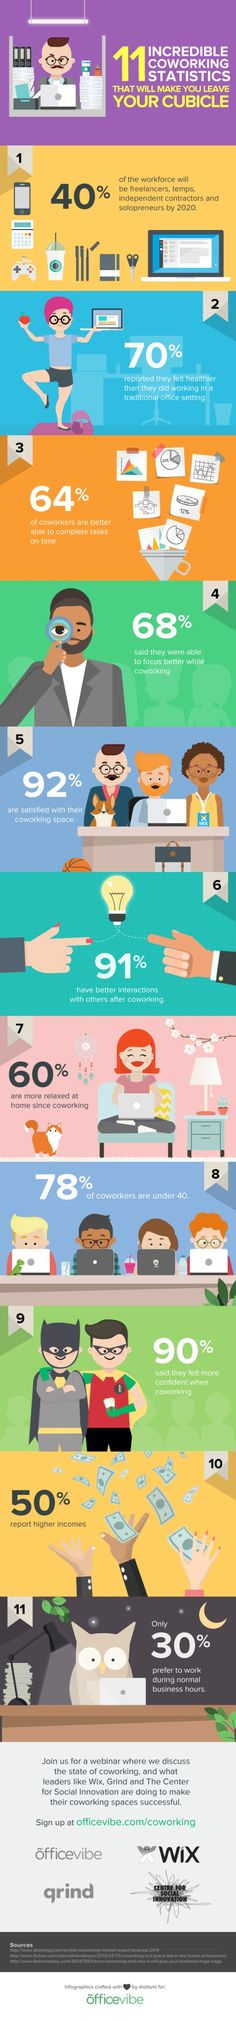 11 incredible coworking statistics tha will make you leave you cubicle - #coworking #freelance